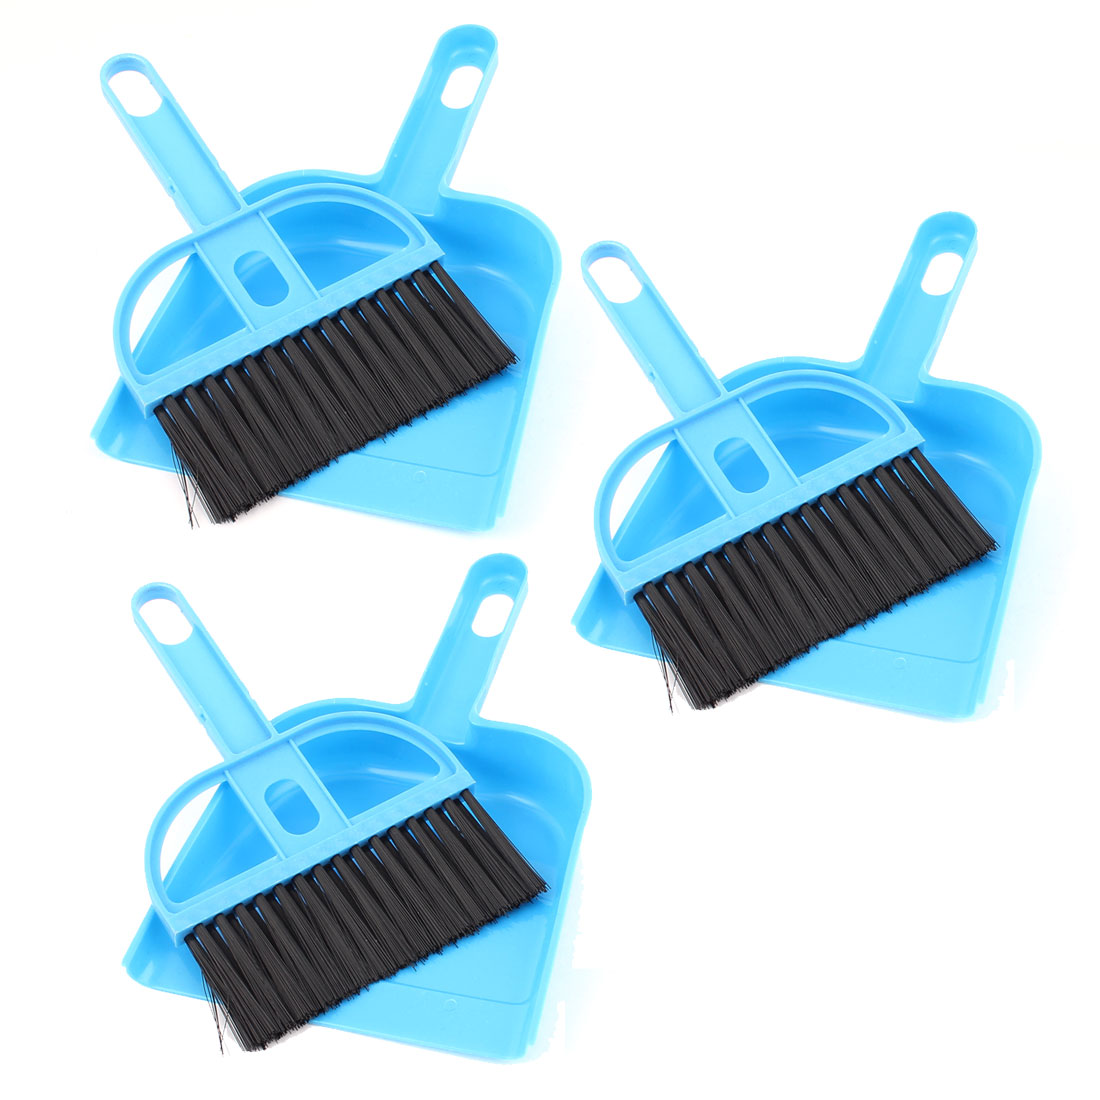 Keyboard Air Outlet Vent Cleaning Sweeping Brush Dustpan Blue 3 Sets